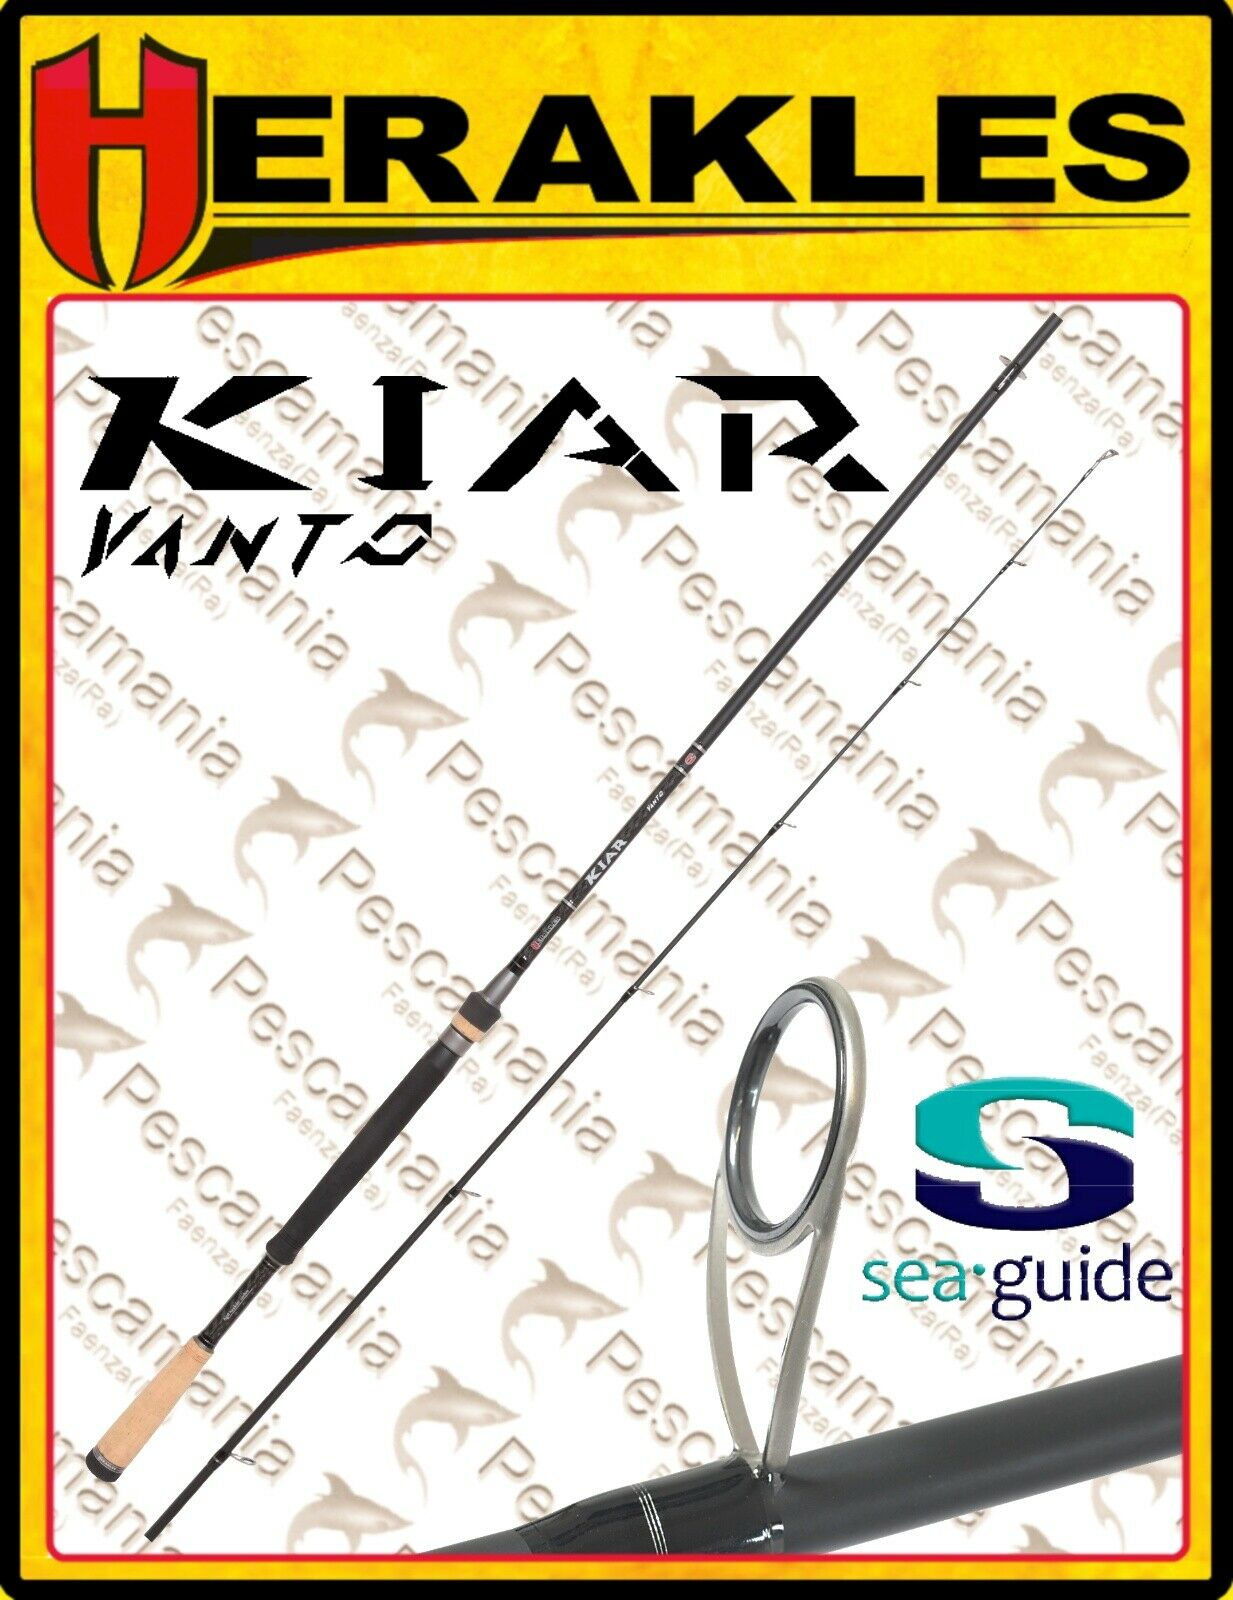 Canne colmic Herakles Kiar Vanto series spinning sea-guides